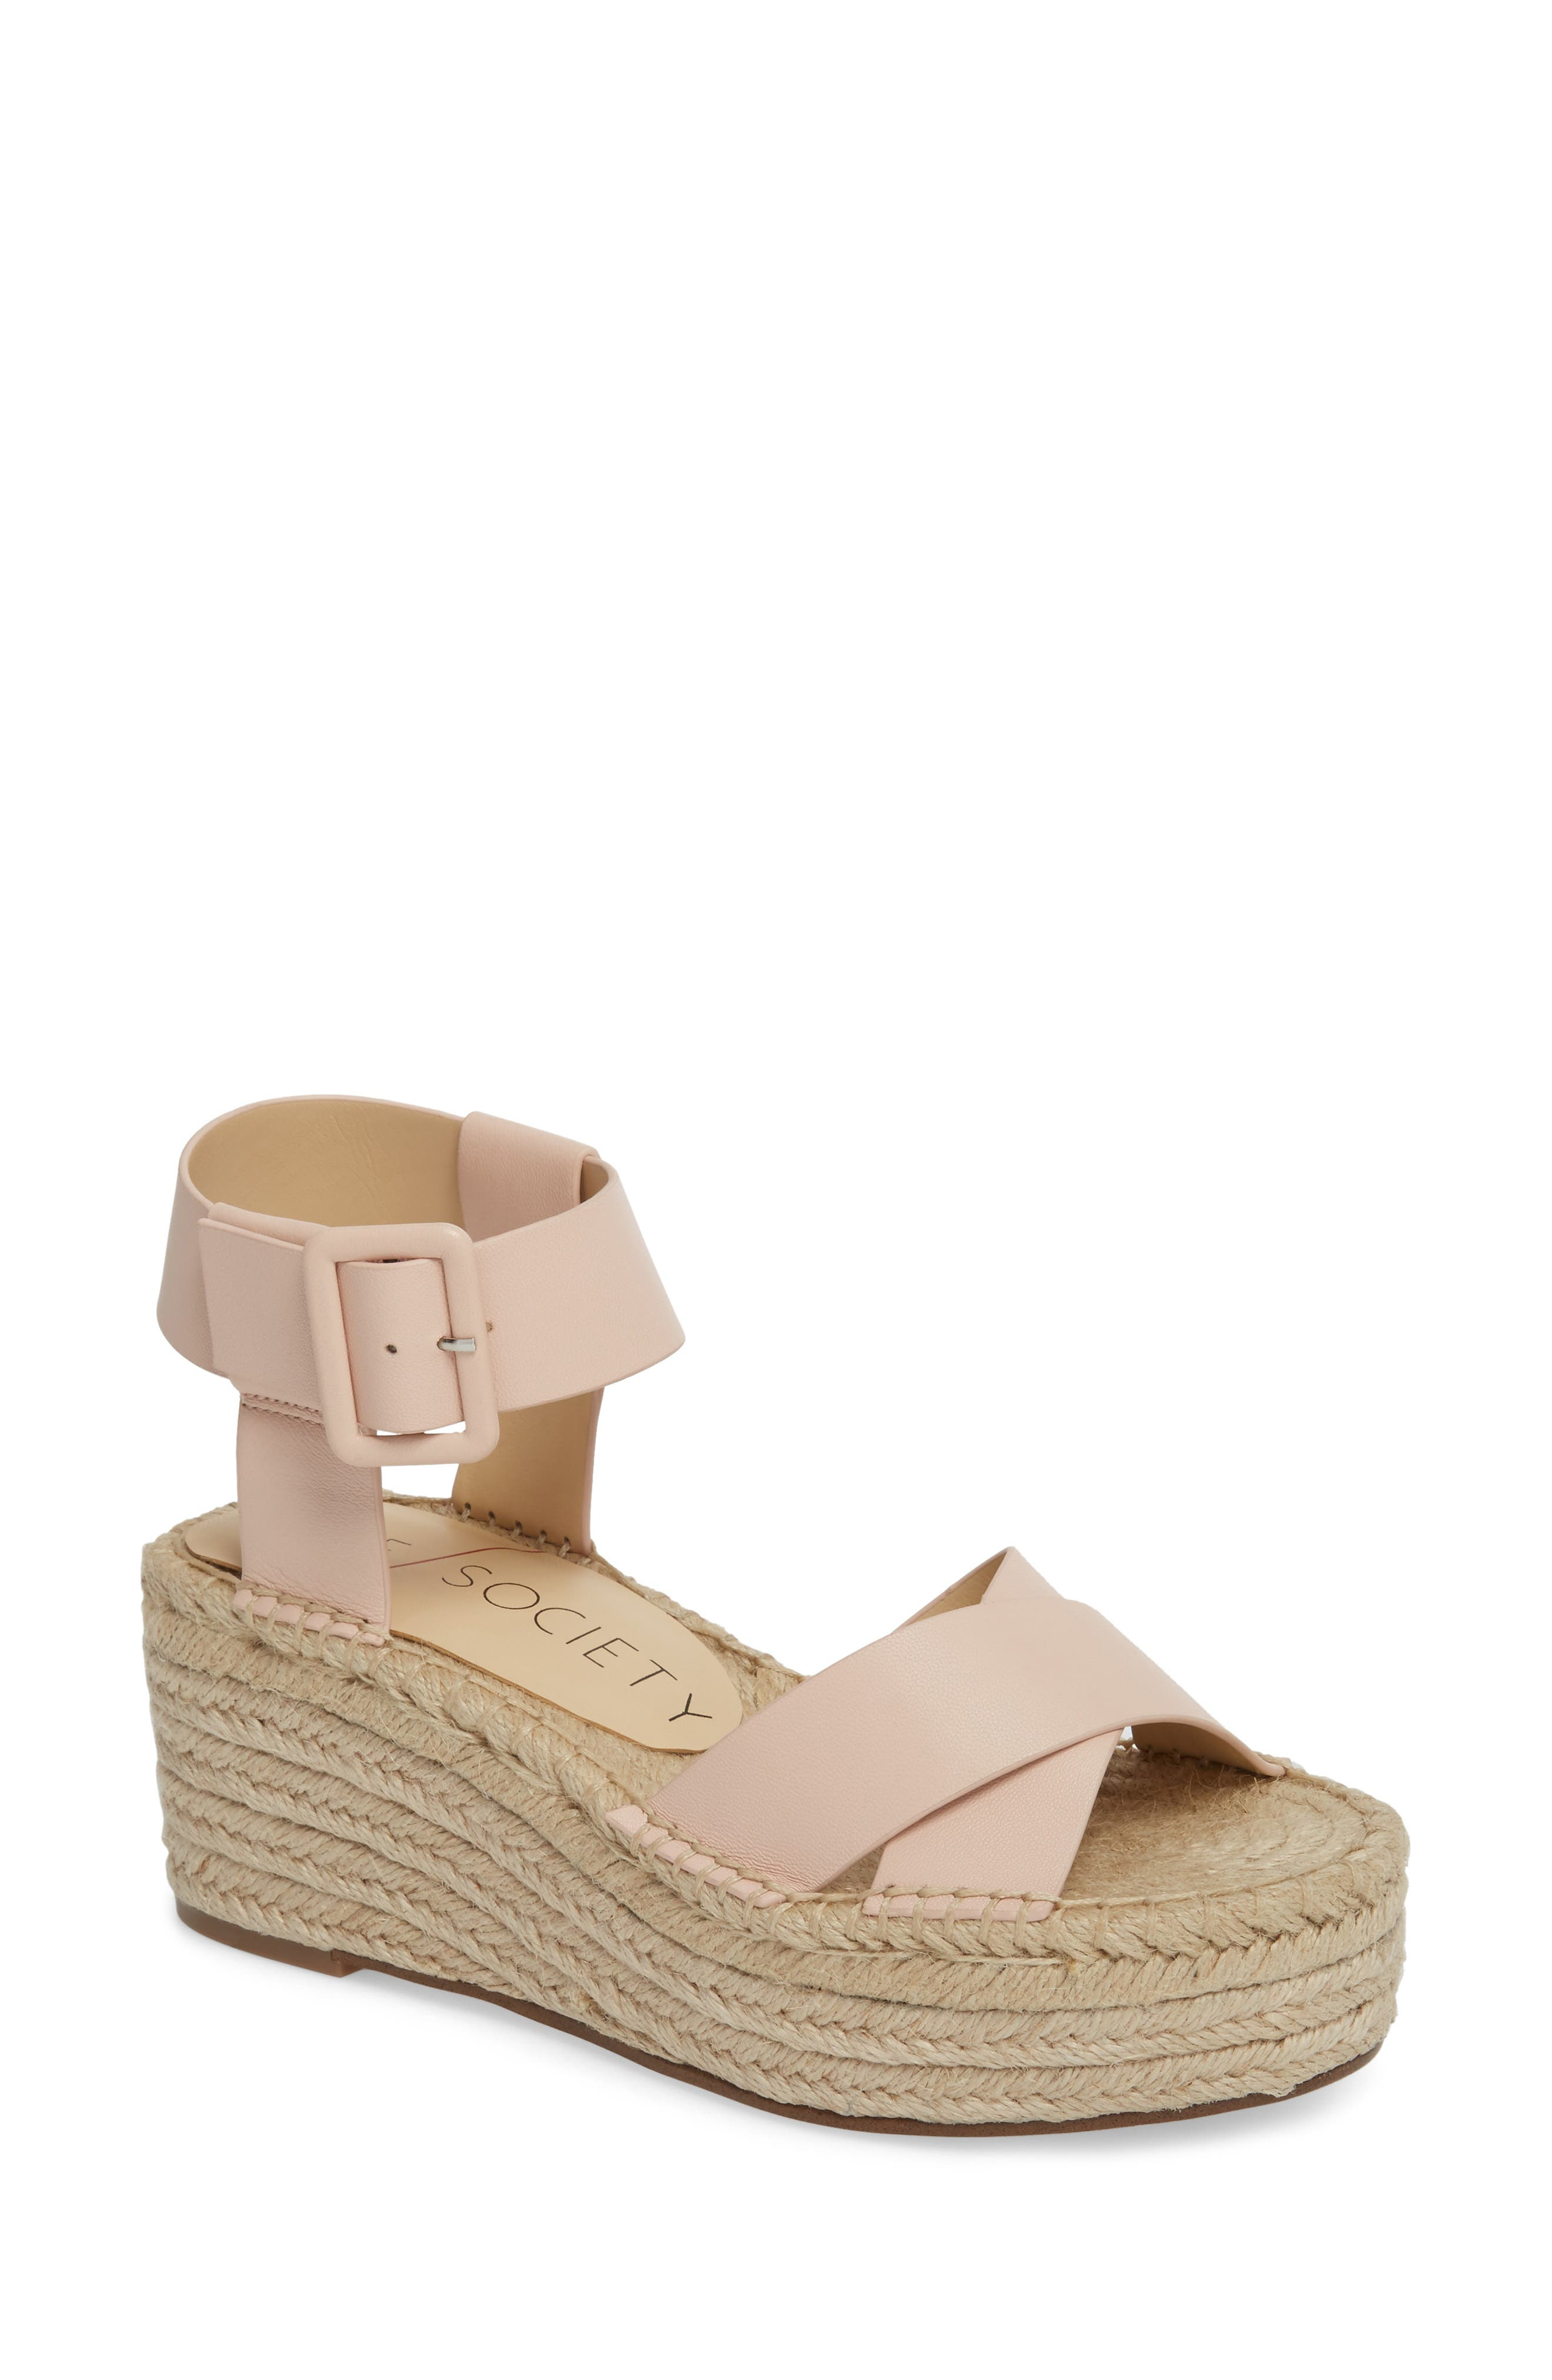 'Audrina' Platform Espadrille Sandal,                         Main,                         color, Rose Blush